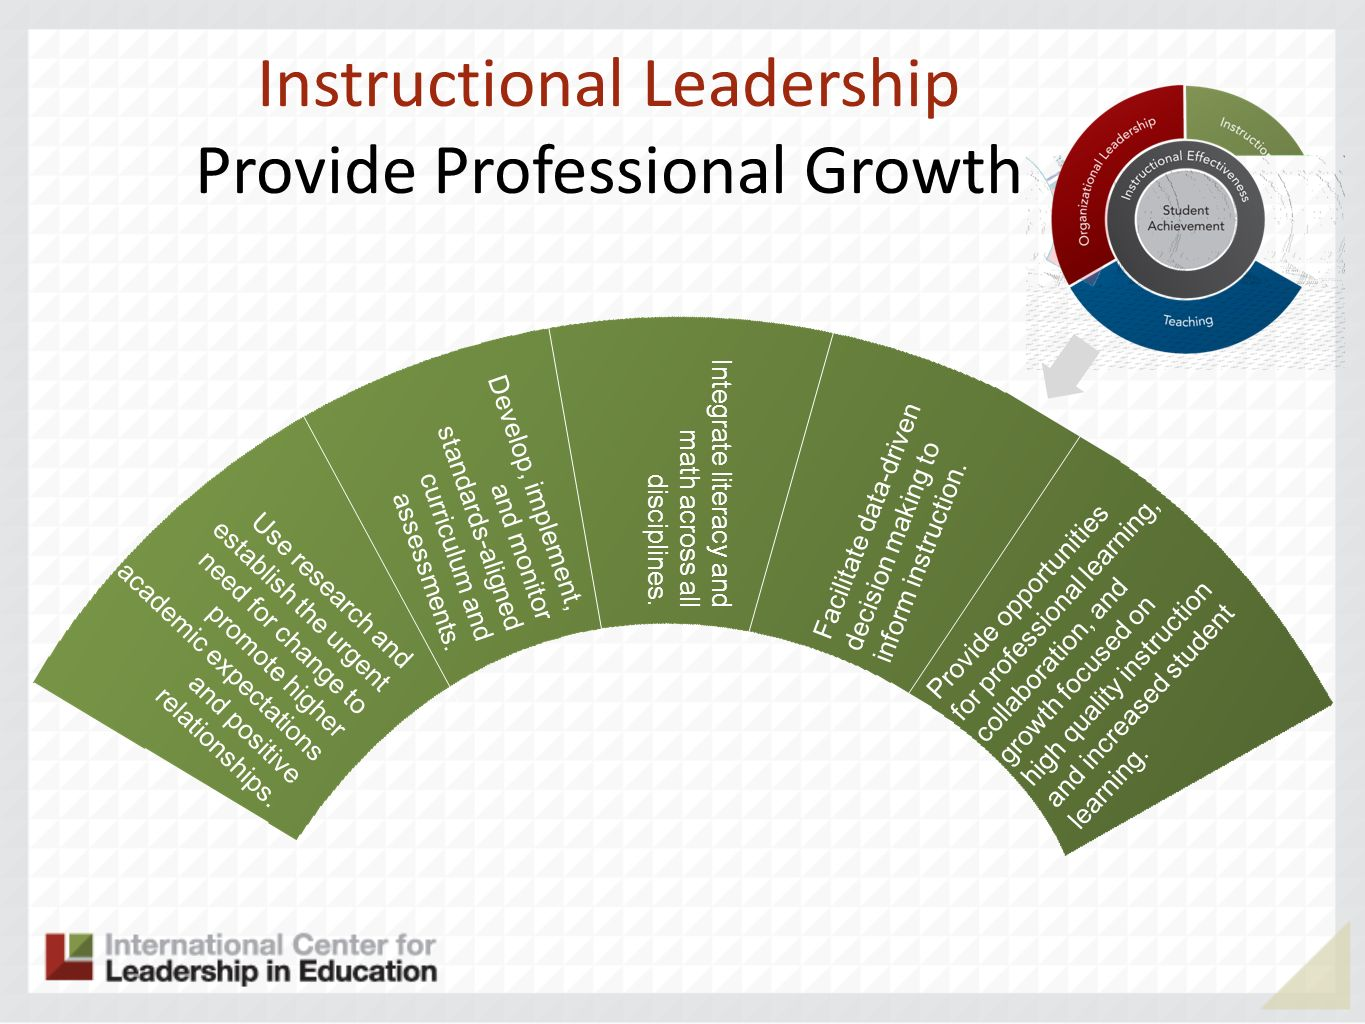 Instructional Leadership Provide Professional Growth Use research and establish the urgent need for change to promote higher academic expectations and positive relationships.